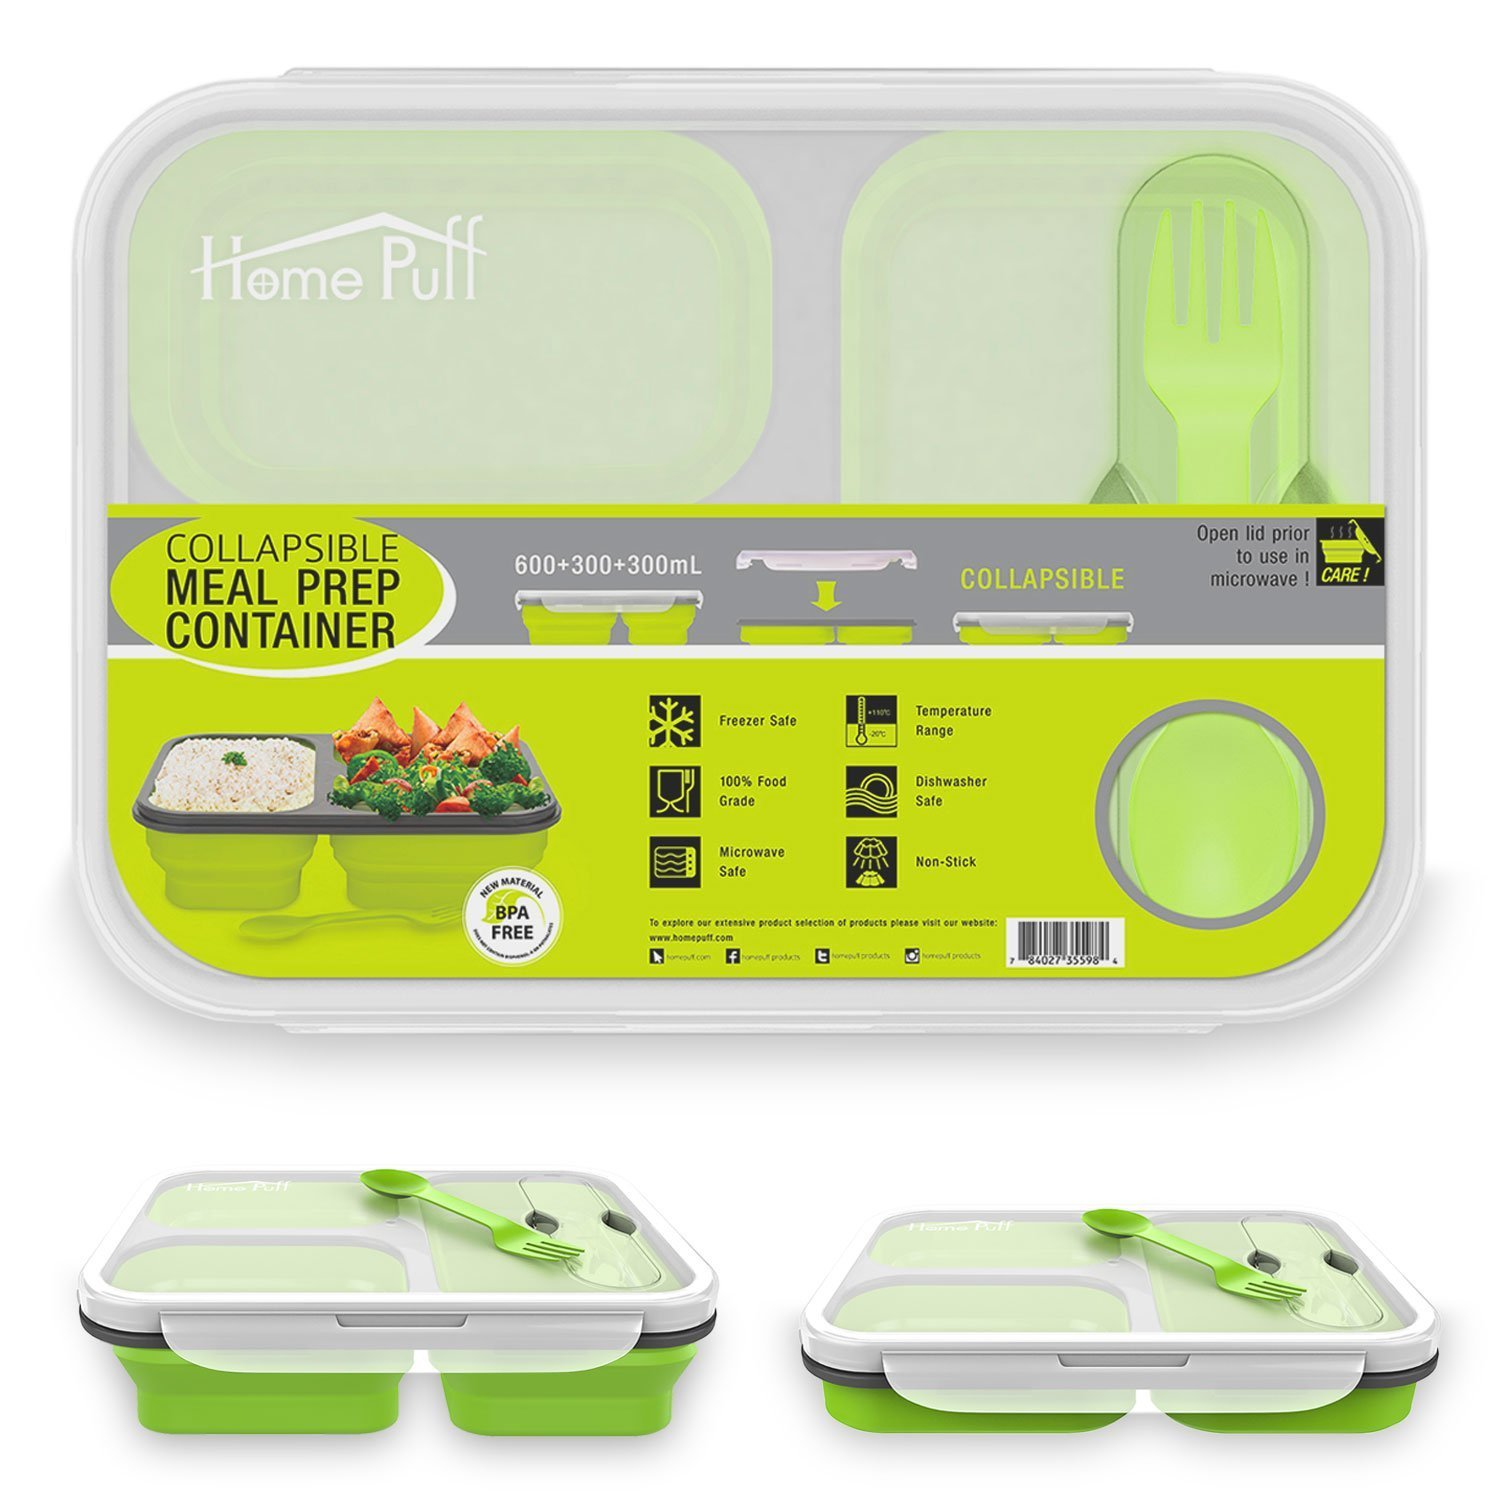 Home Puff Collapsible Best Lunch Box In India For Student